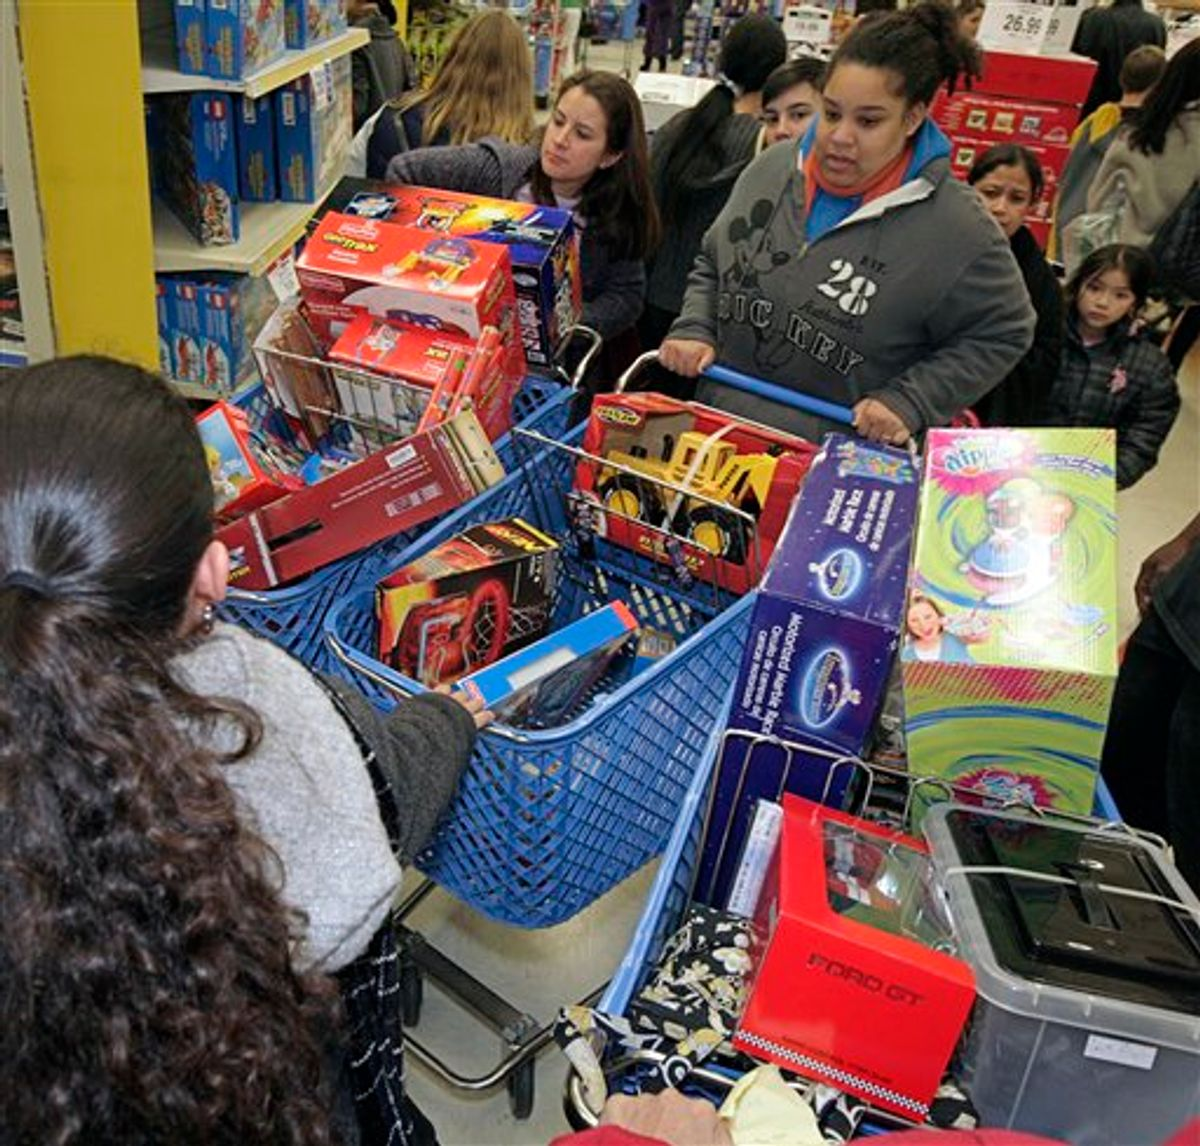 A traffic jam is negotiated in the aisles of Toys R Us, in San Rafael Calif., Thursday Nov. 25, 2010 which was crowed with Black Friday shoppers. (AP Photo/Mike Adaskaveg)   (AP)